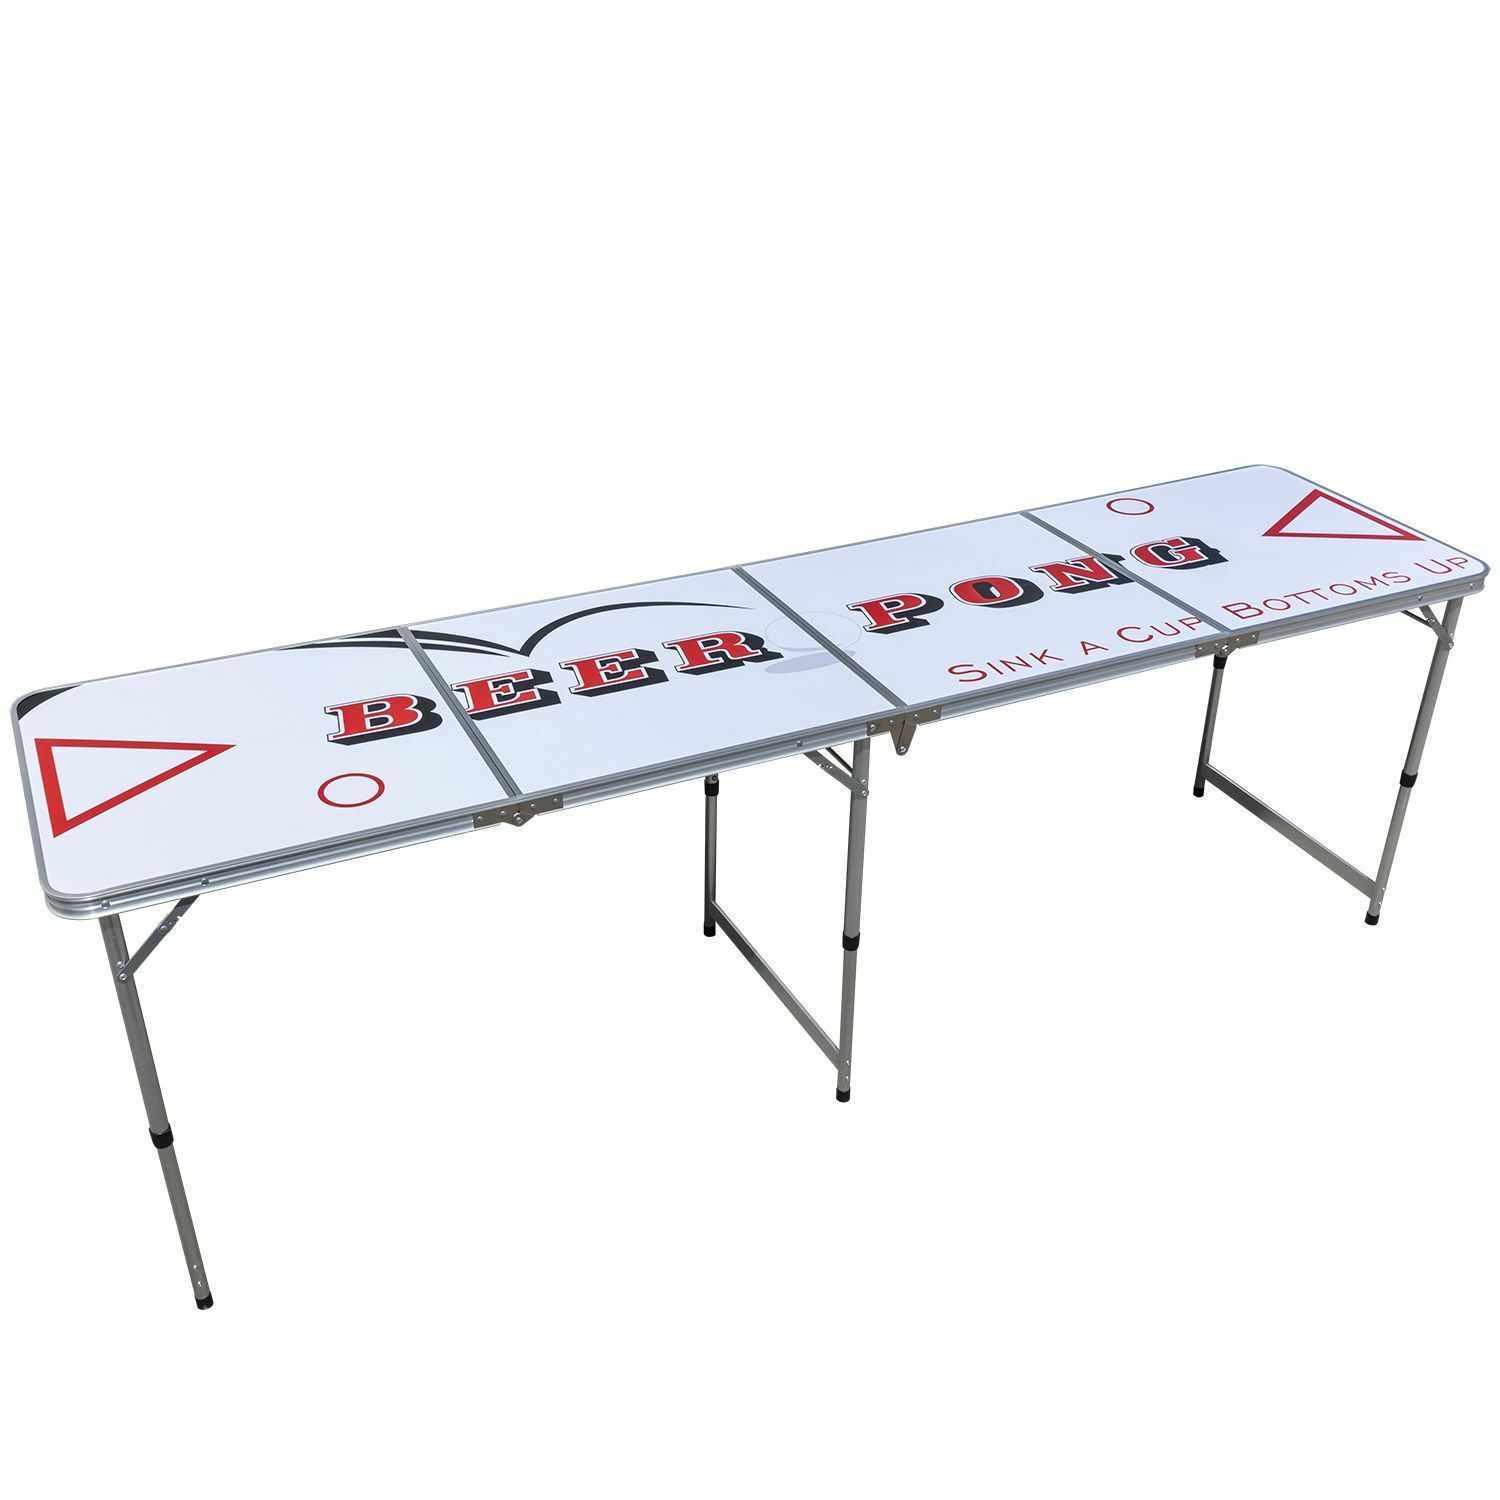 Beer Pong Table, Beer Party Game, Fußball Weltmeisterschaft, Camping Tisch